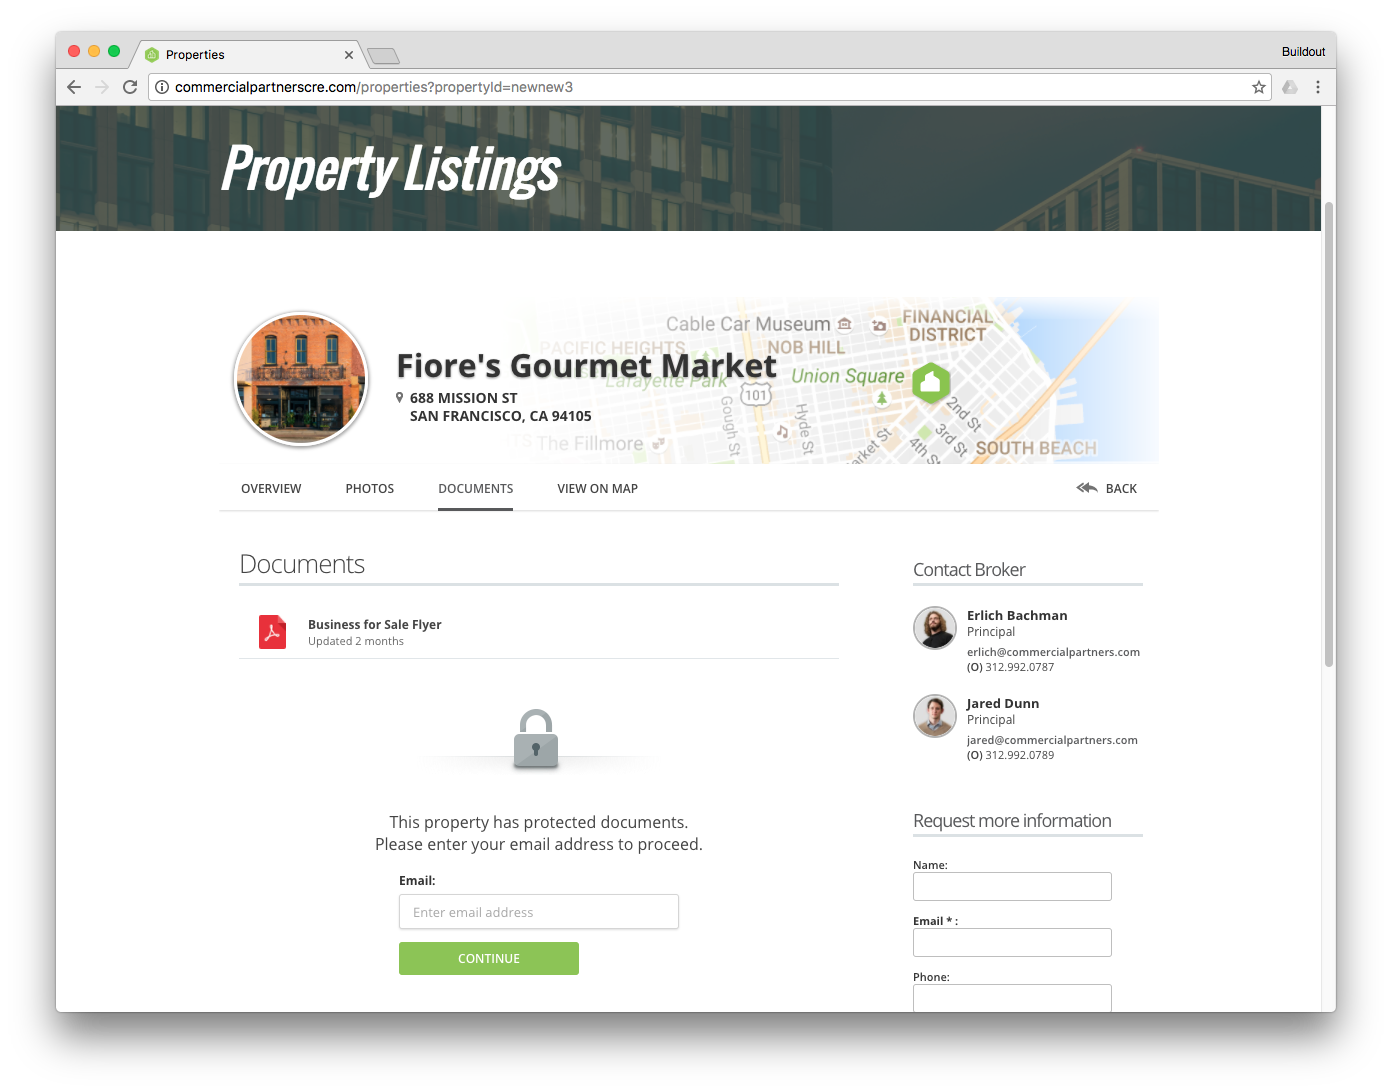 Use Buildout's document vaults to house all of your property's most important information, collect leads and execute CAs.